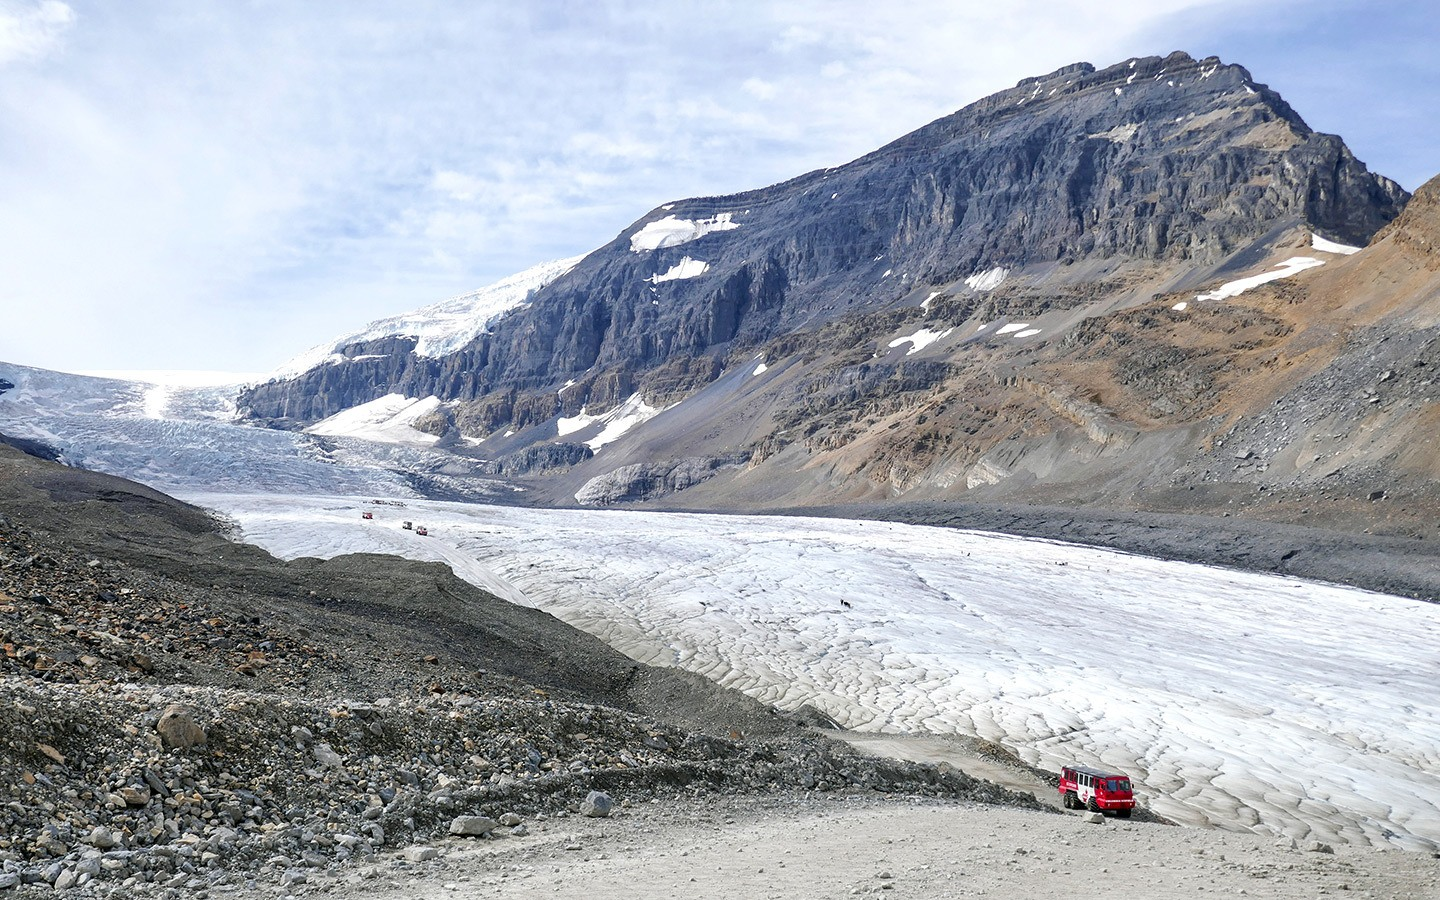 Glacier walking in the Rockies: A Columbia Icefields tour